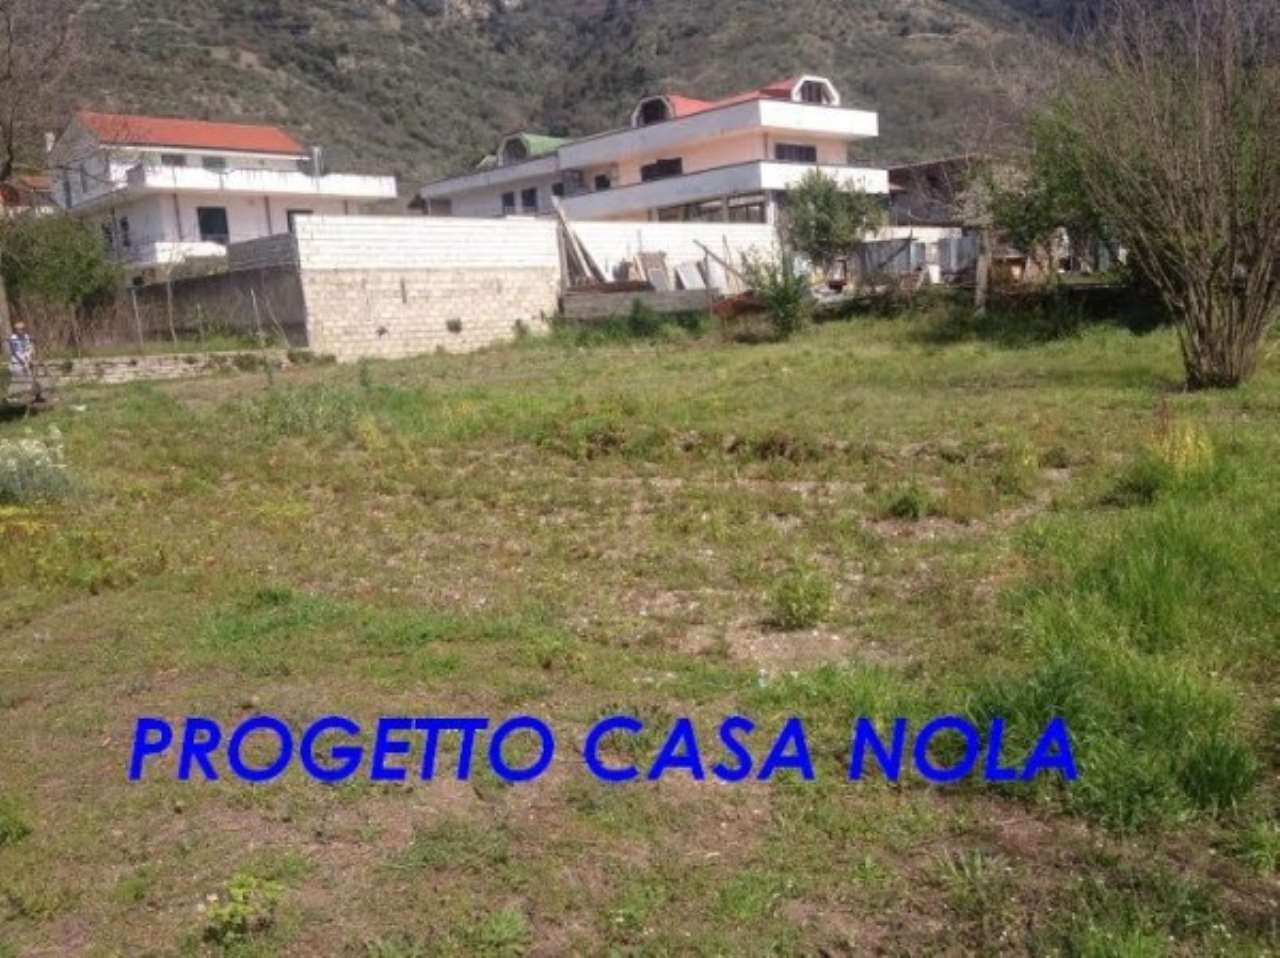 Terreno edificabile in vendita a Pago del Vallo di Lauro (AV)